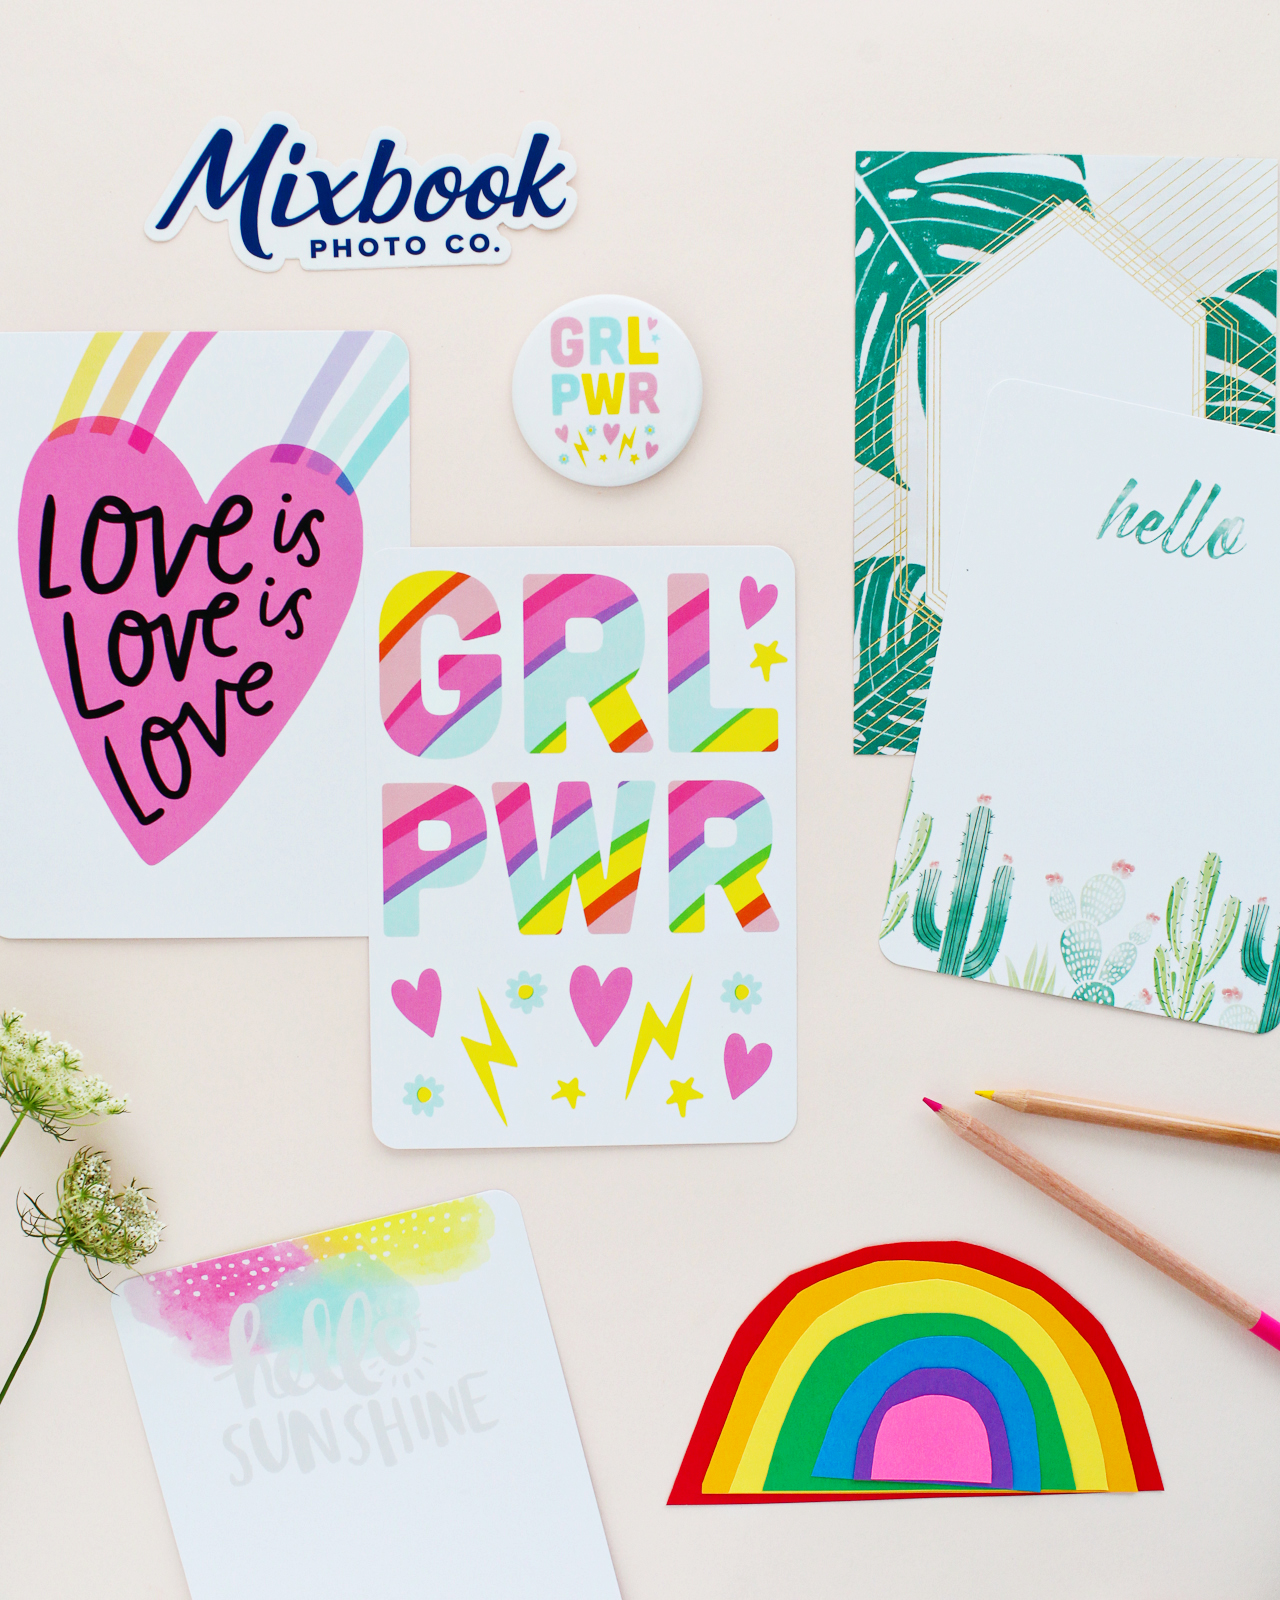 Mixbook Designer Collaborations